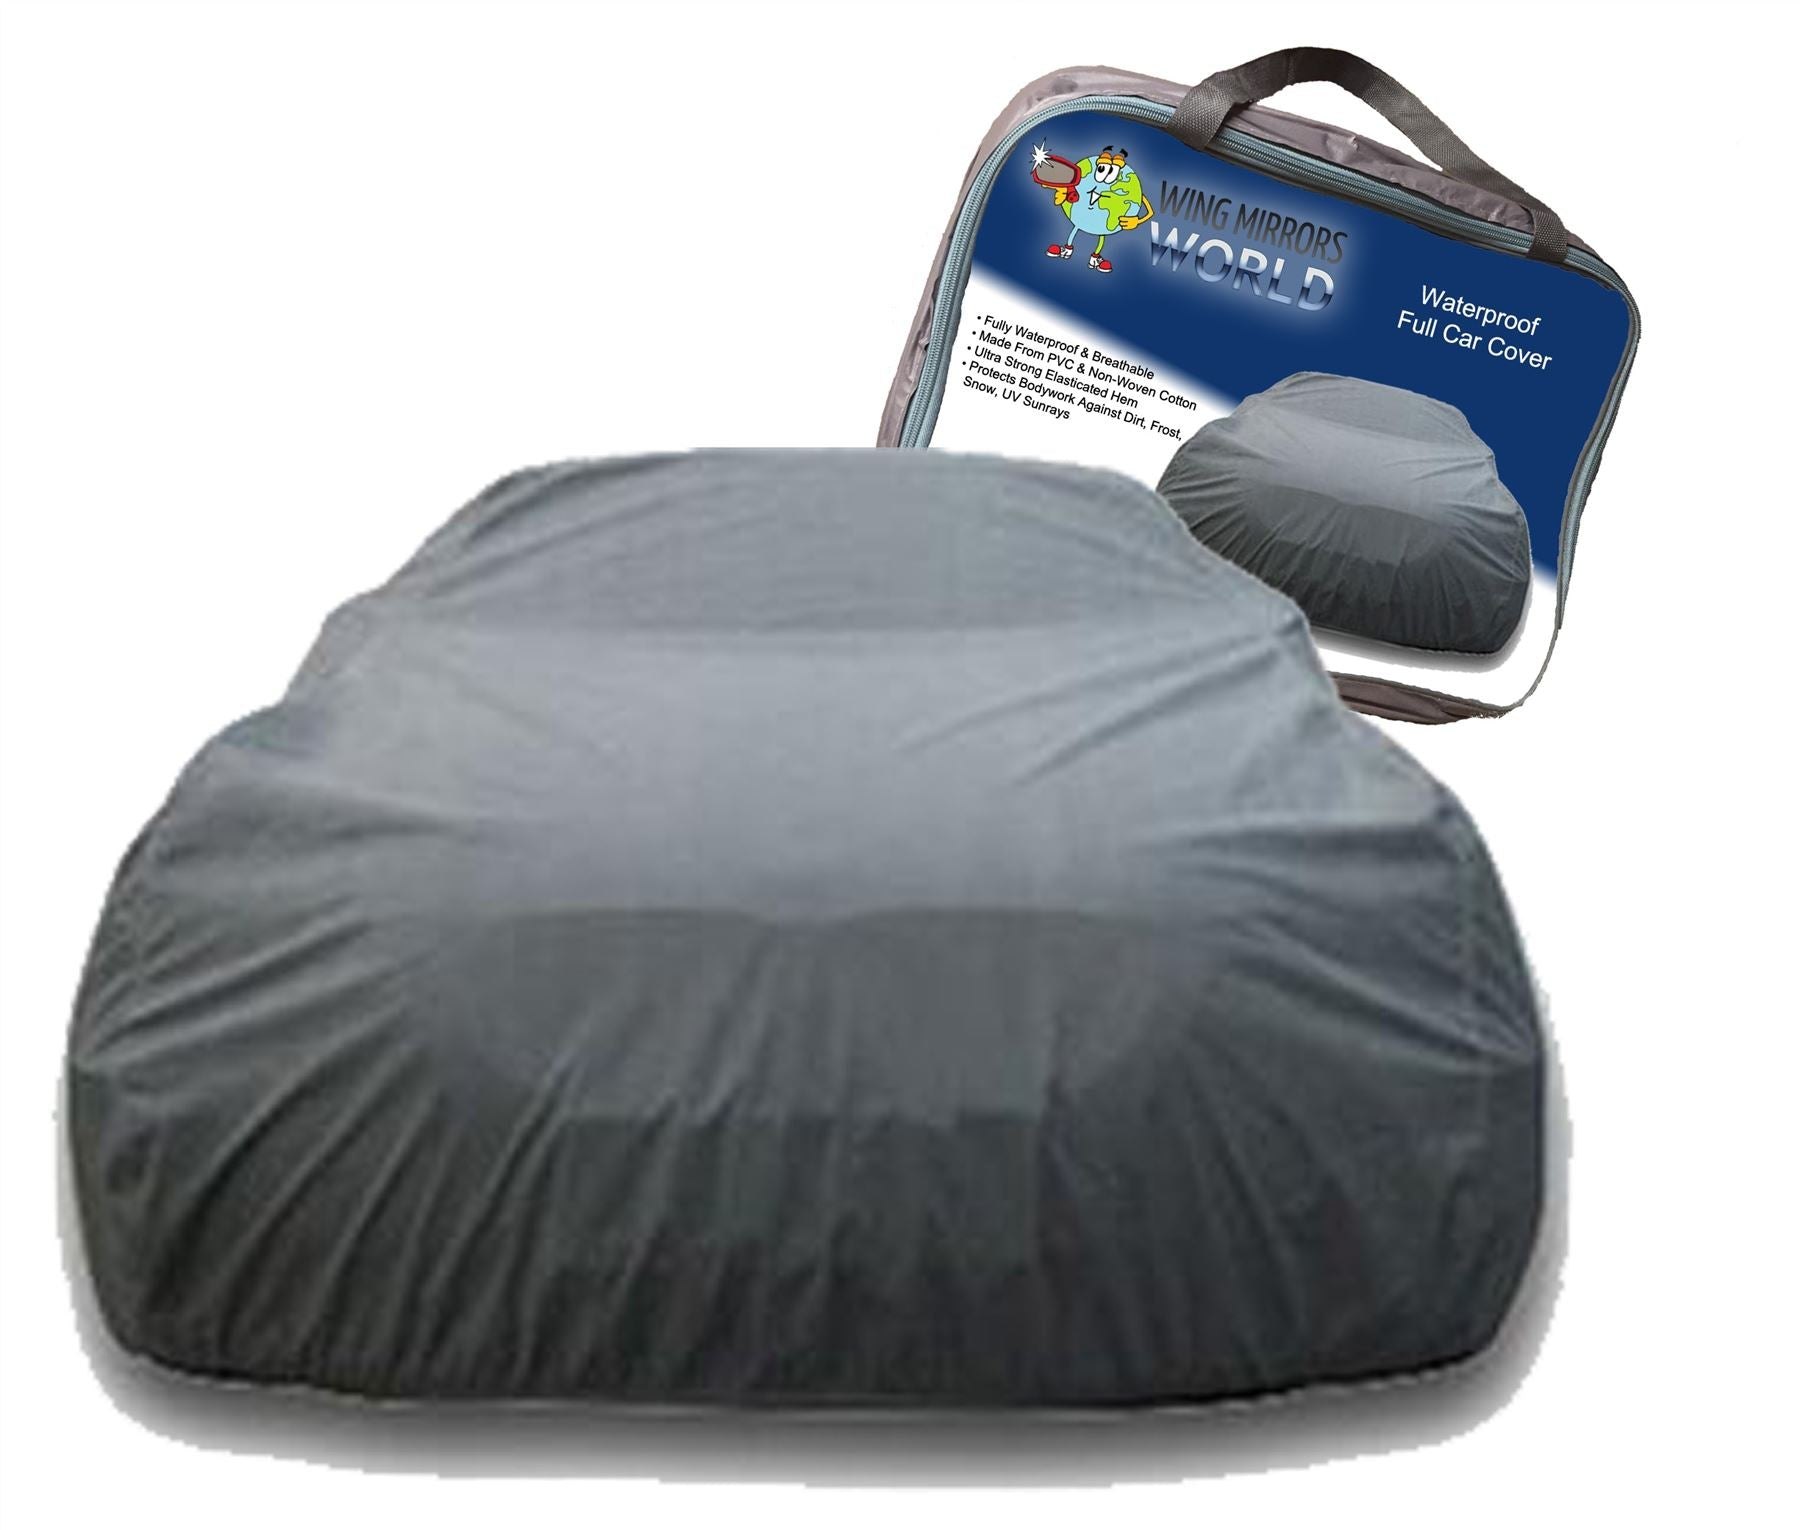 Universal Small New Fully Breathable Water Resistant Indoor Car Cover SWBCCS